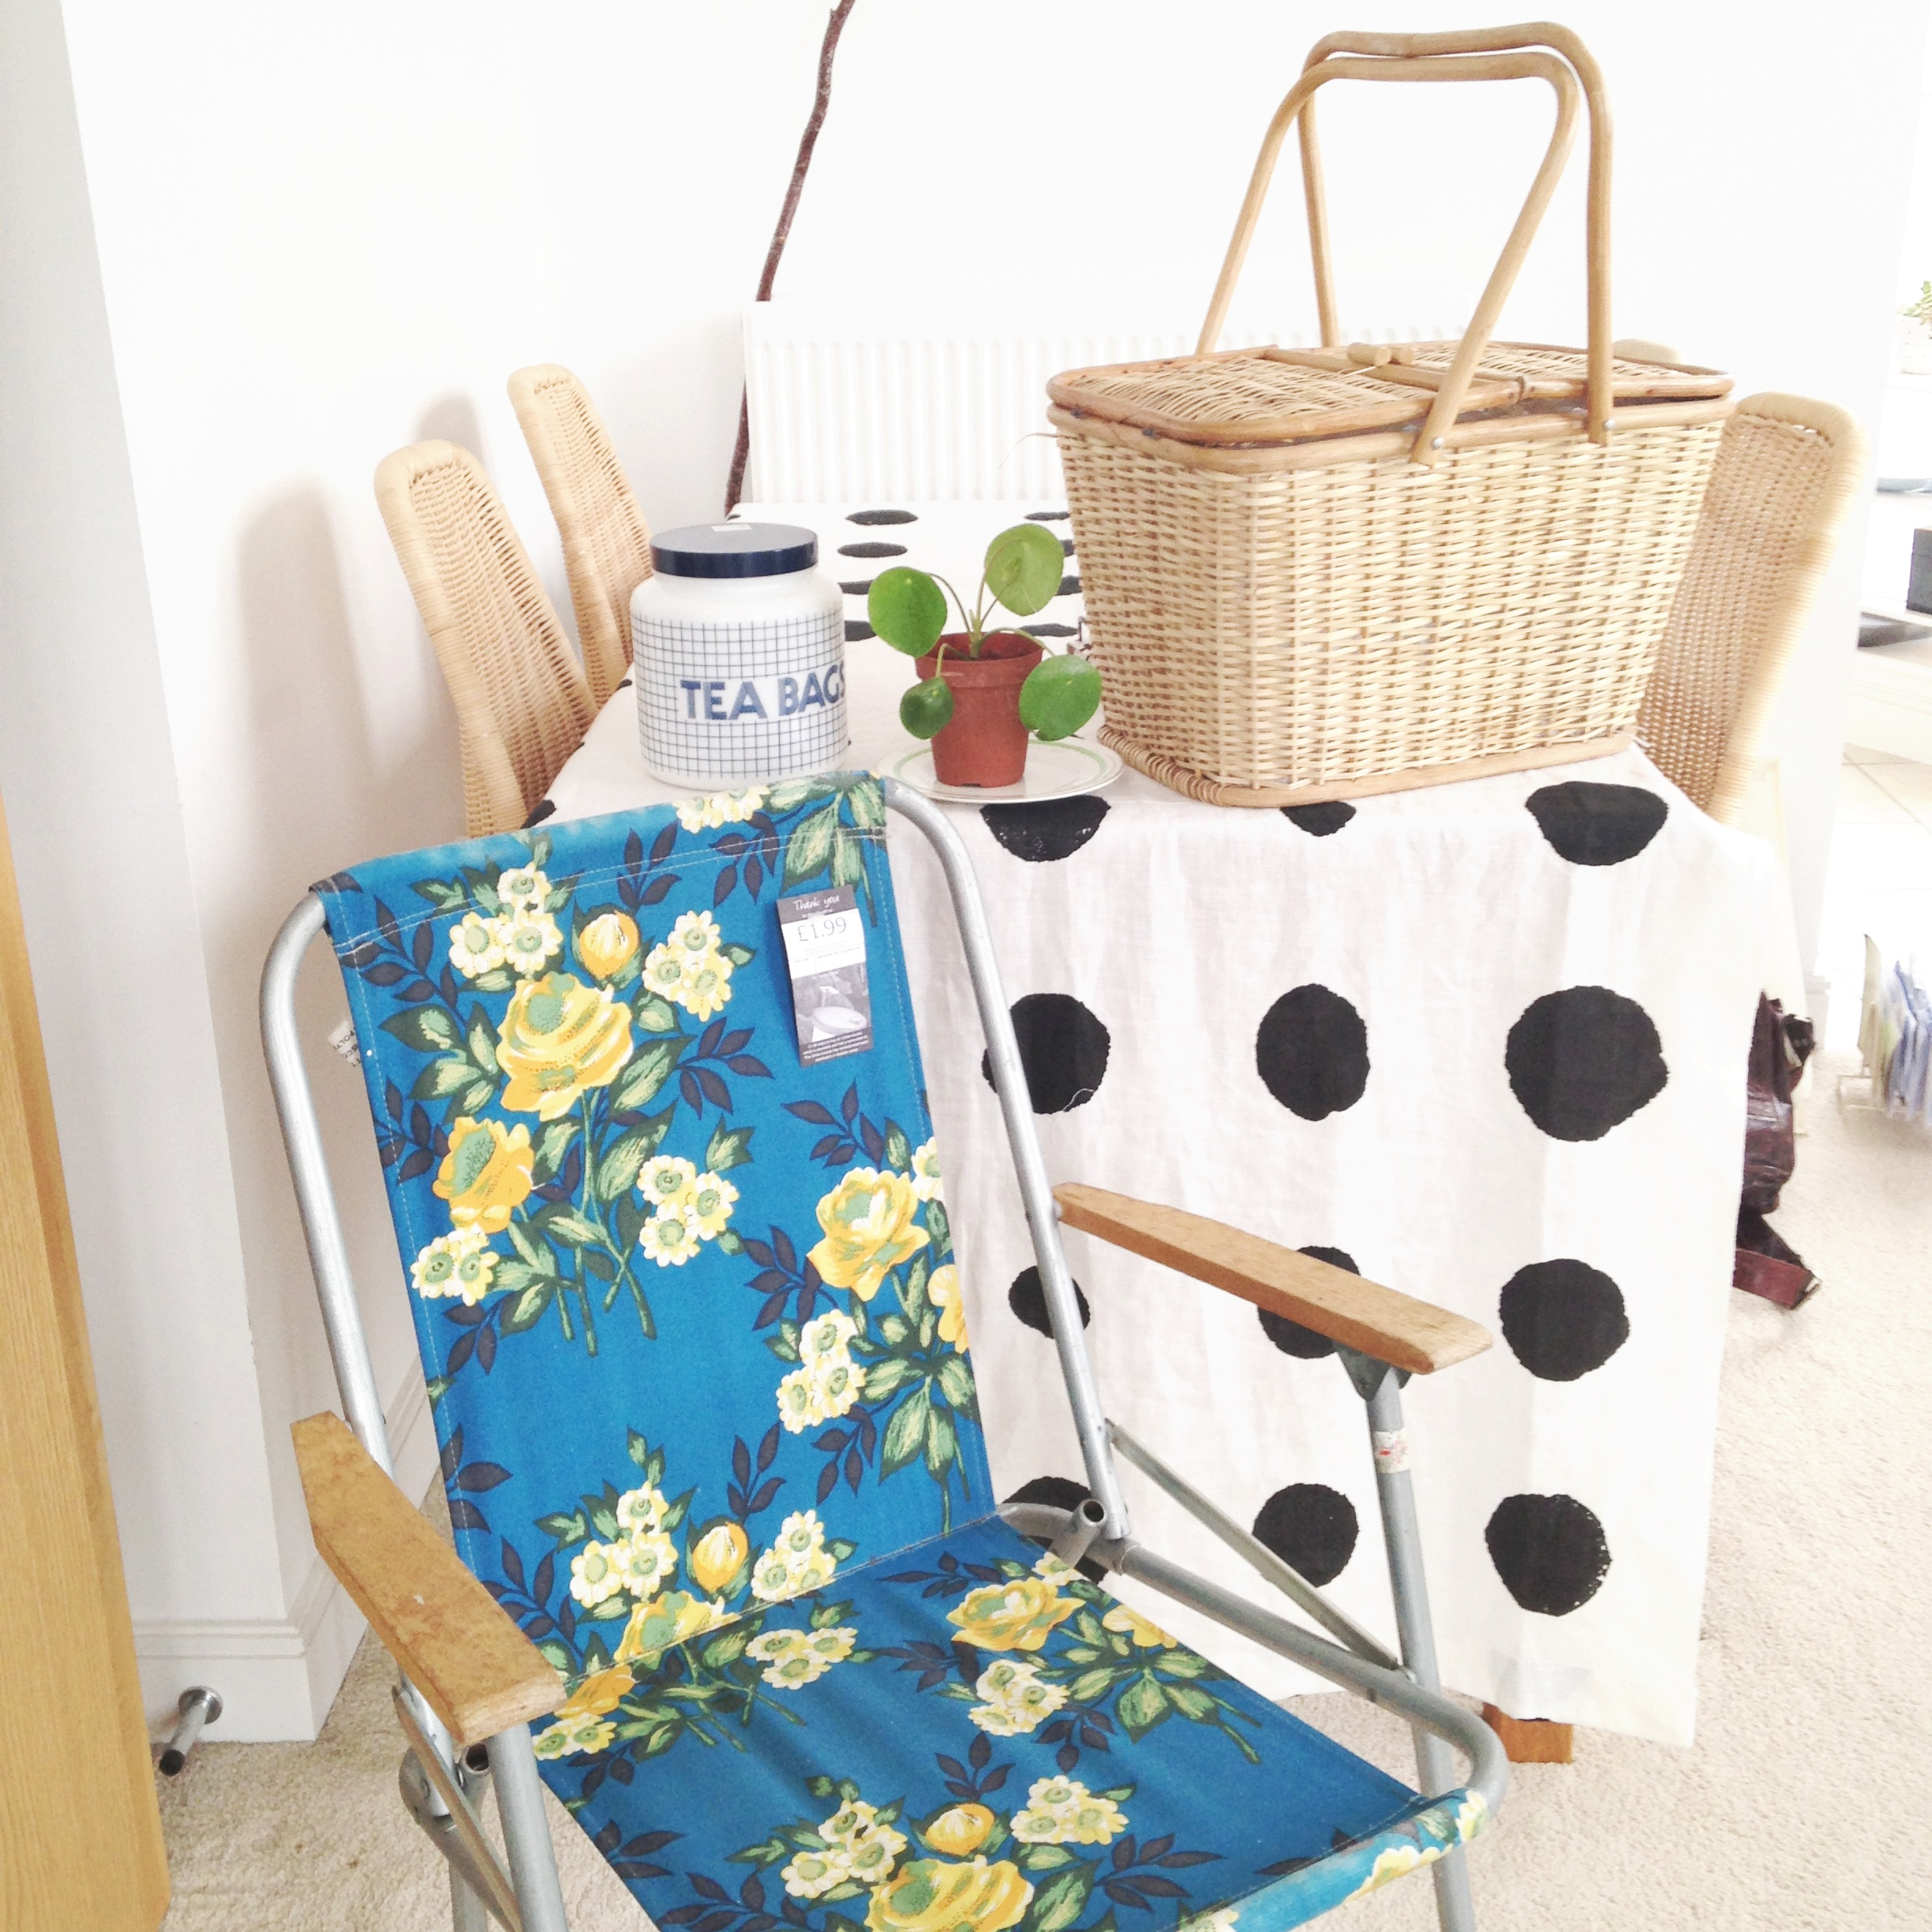 5//. this little stash of goodies from a recent charity shop wander - I'm especially proud of my £1.99 garden chair!